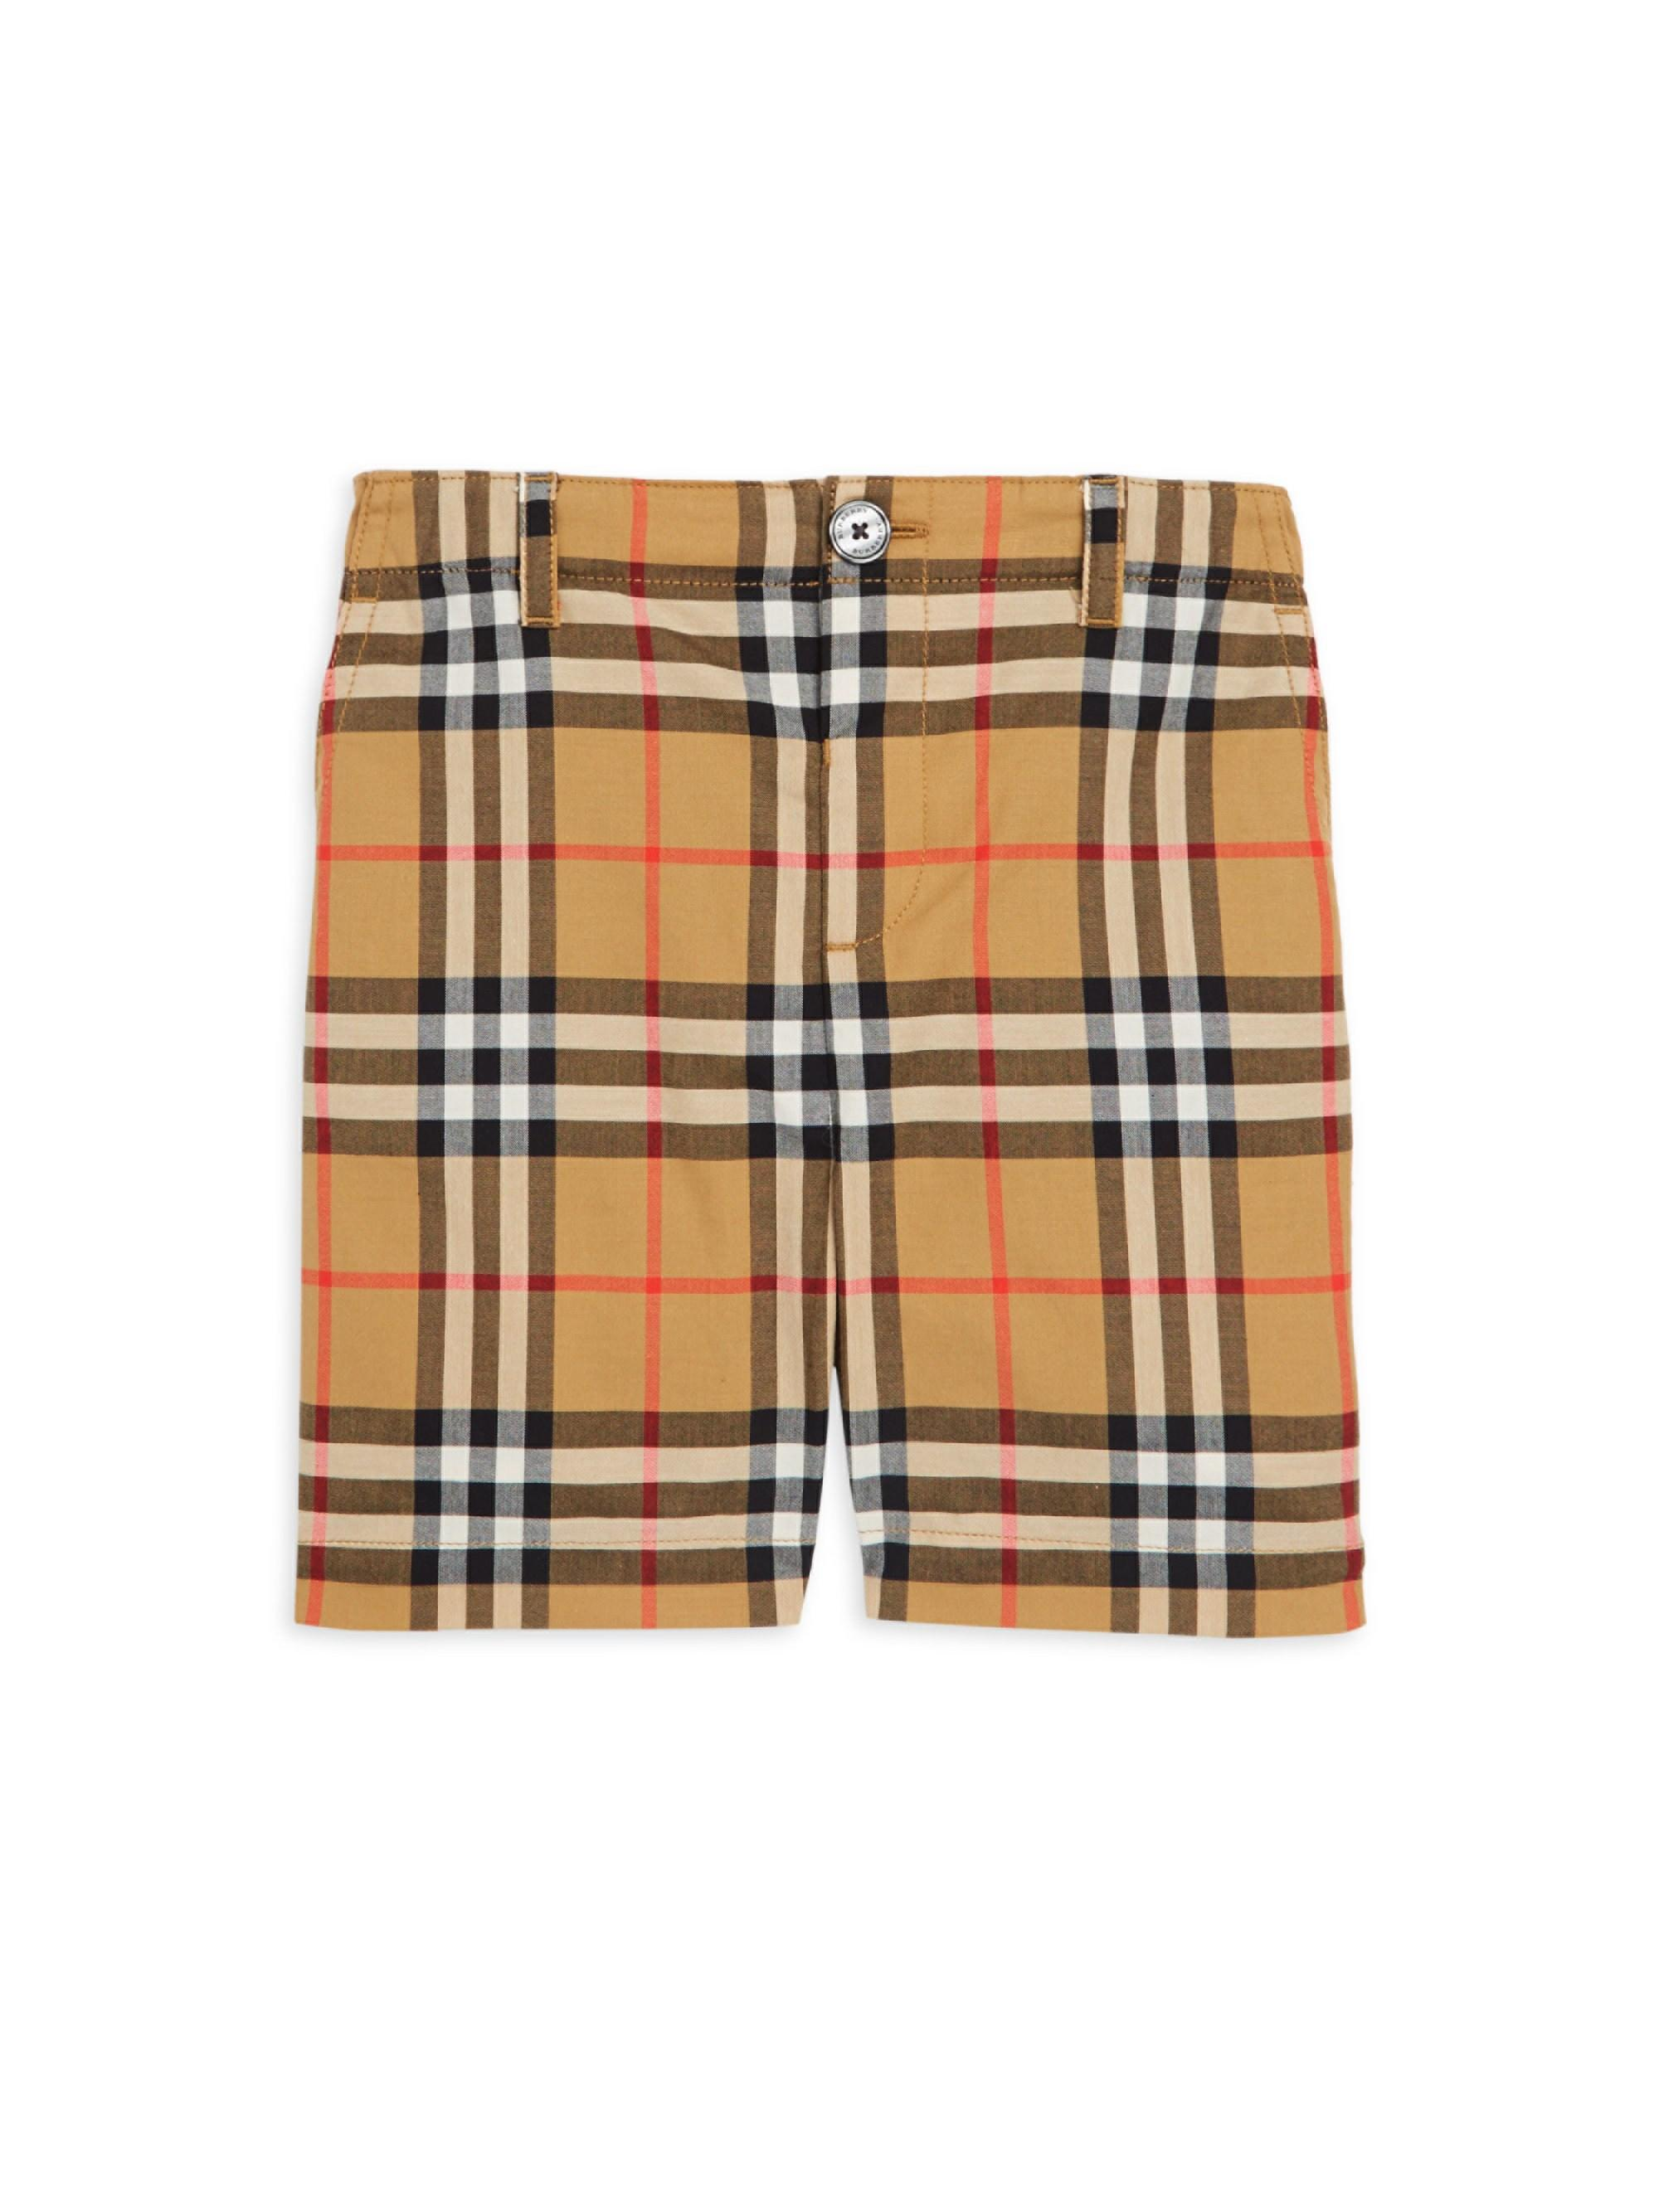 232c56ad2ec74 Lyst - Burberry Baby Boy s   Little Boy s Sean Check Cotton Shorts ...